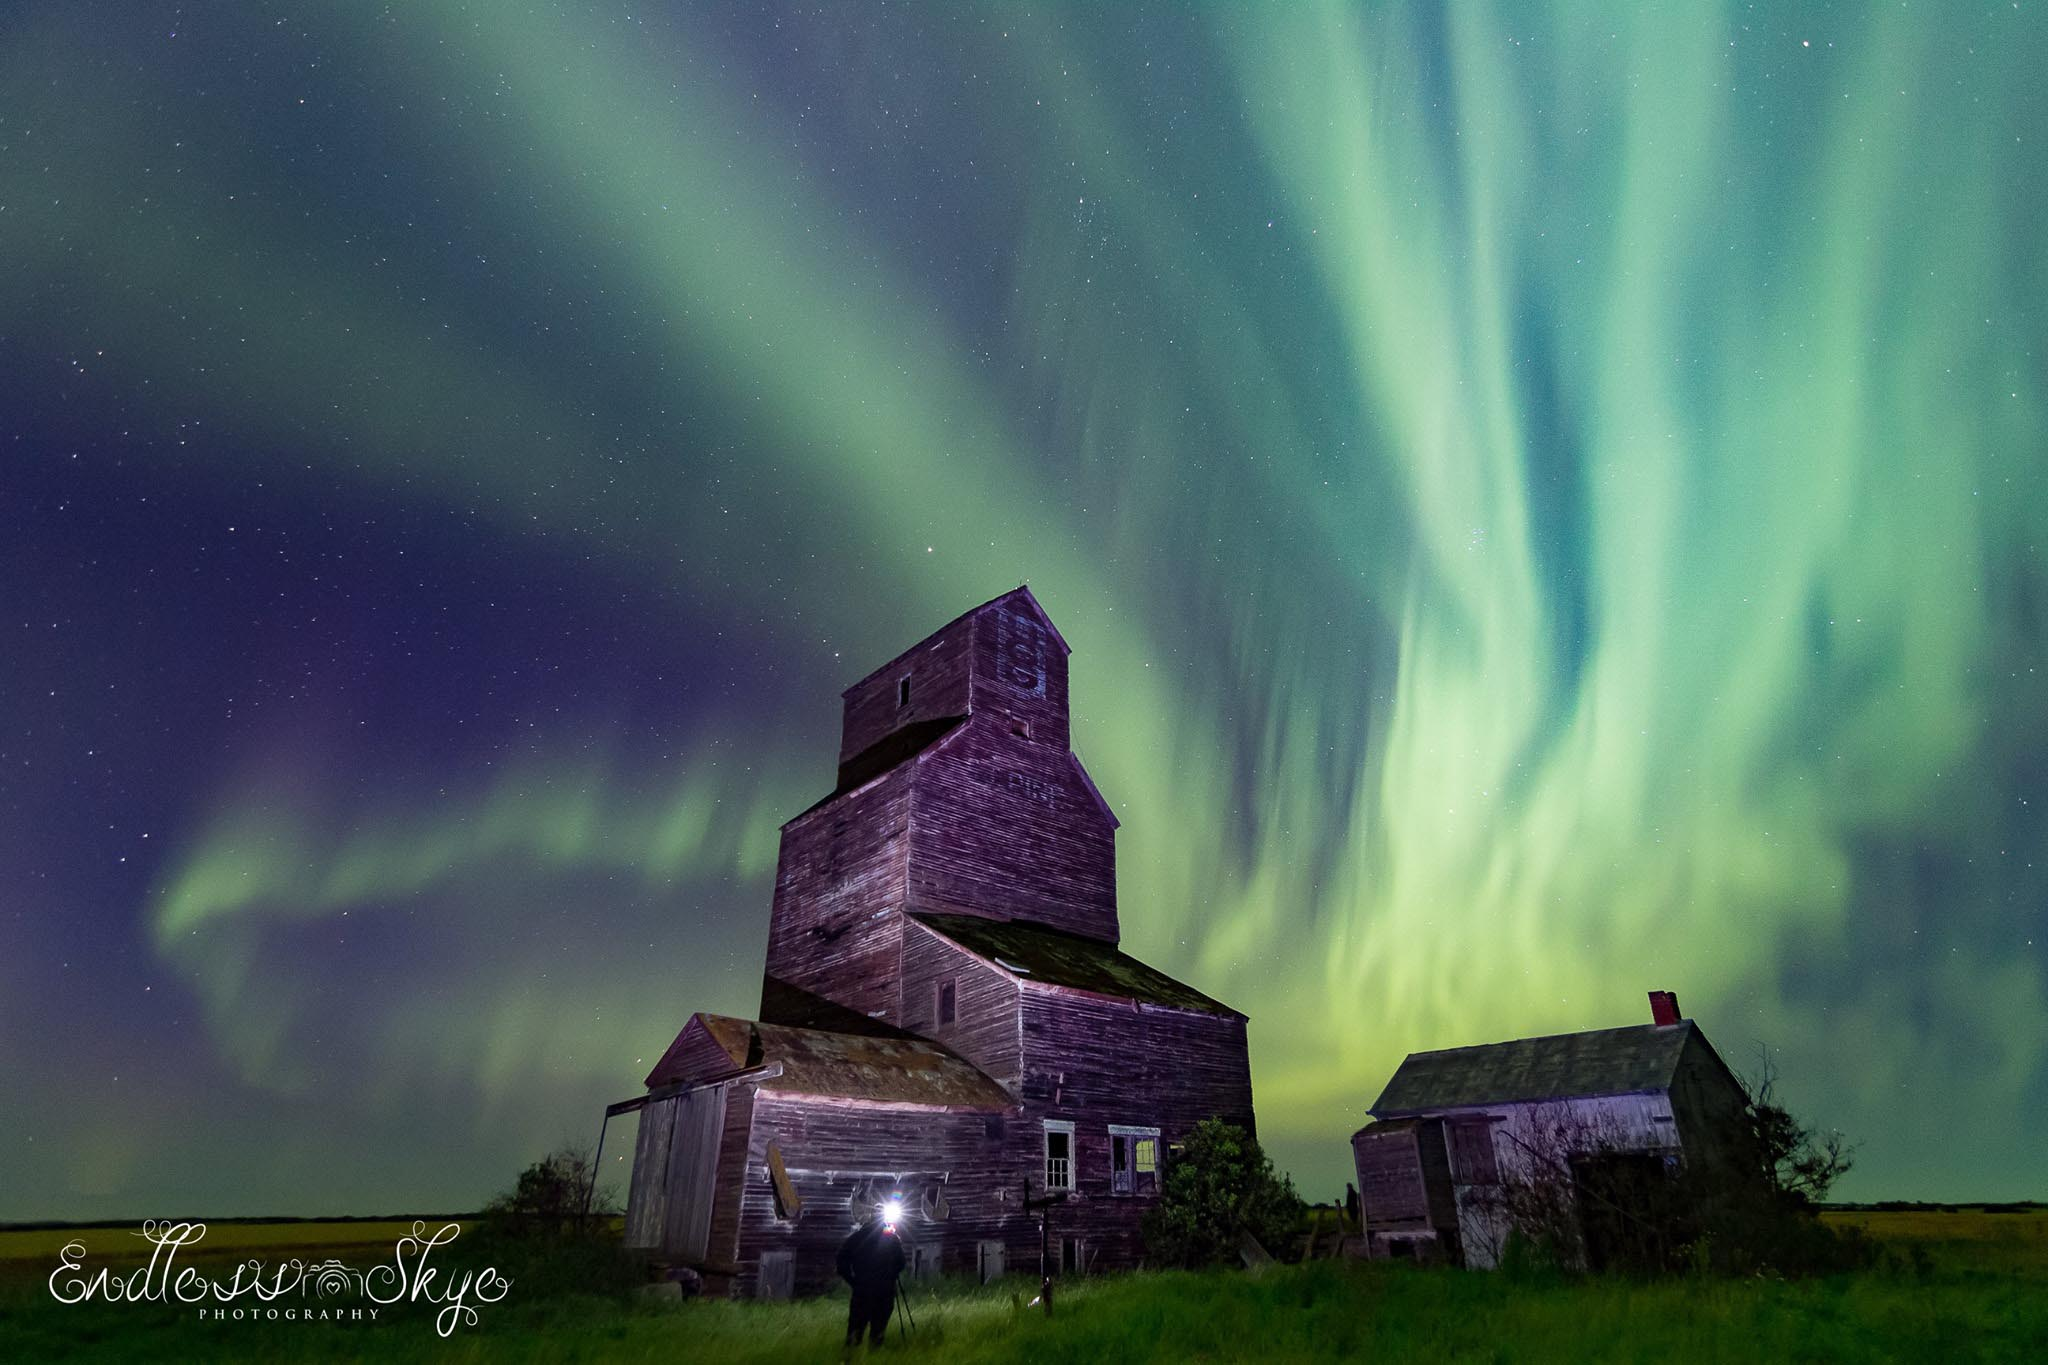 Bands Of Green Northern Lights Flaring Out Behind An Old Grain Elevator Lit  Up By Another